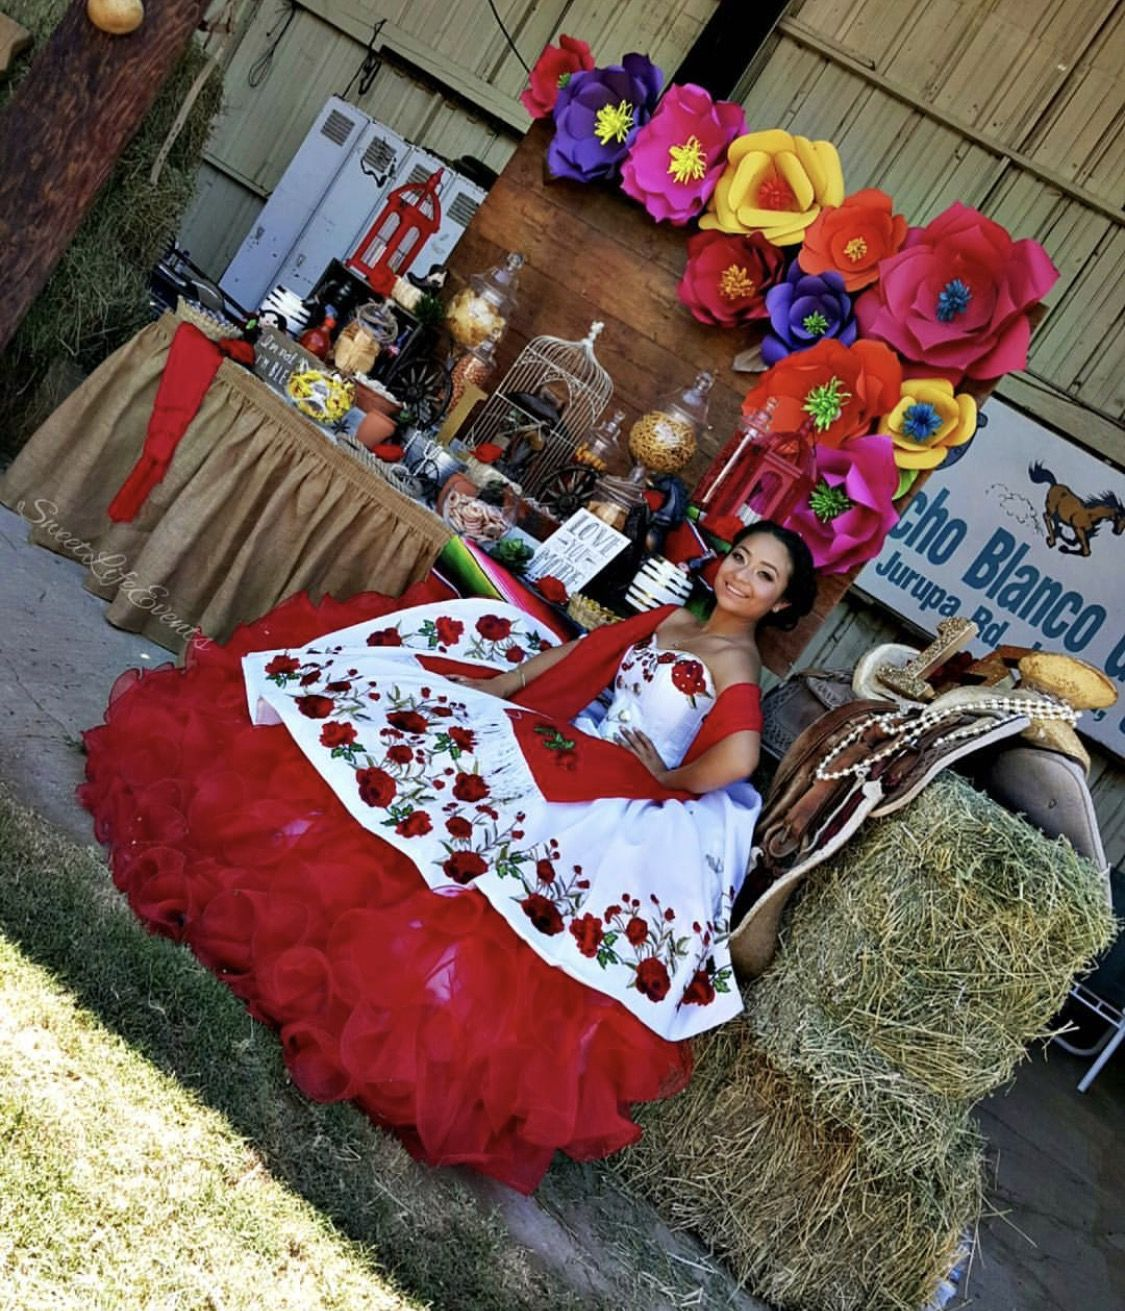 820416c1c0 Quinceañera charro mexican dress  red white roses